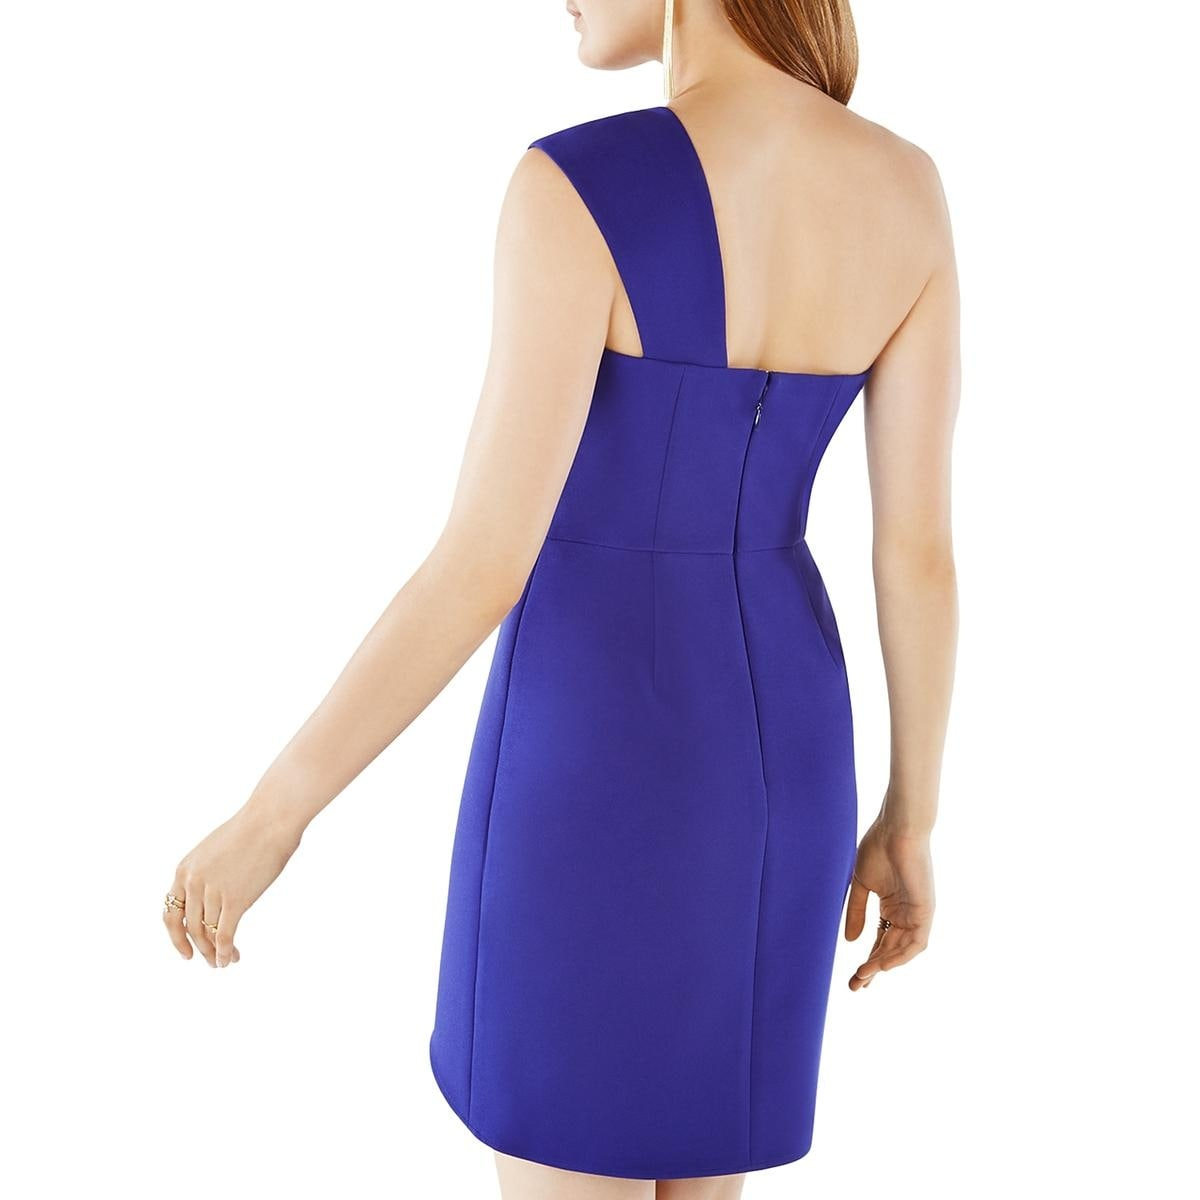 ce323a0f28f Shop BCBG Max Azria Womens Aryanna Cocktail Dress One-Shoulder Mini - Free  Shipping Today - Overstock - 17159085